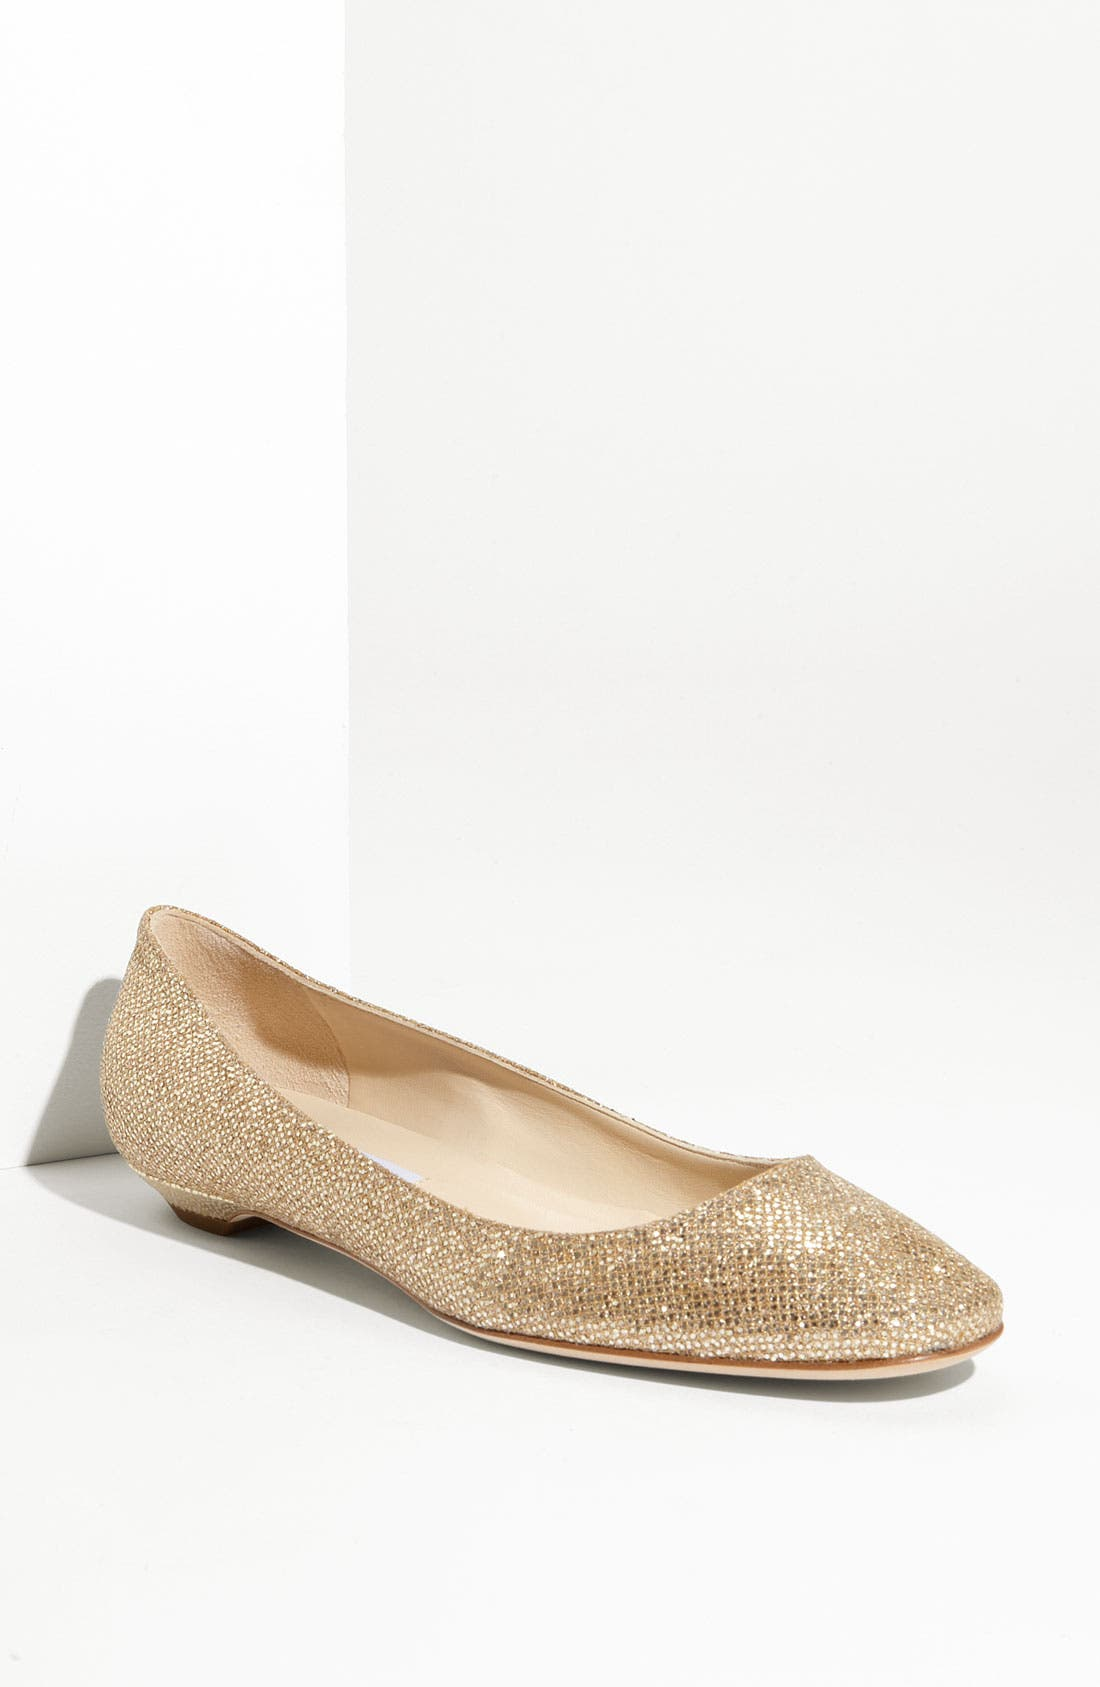 Alternate Image 1 Selected - Jimmy Choo 'Finlay' Flat